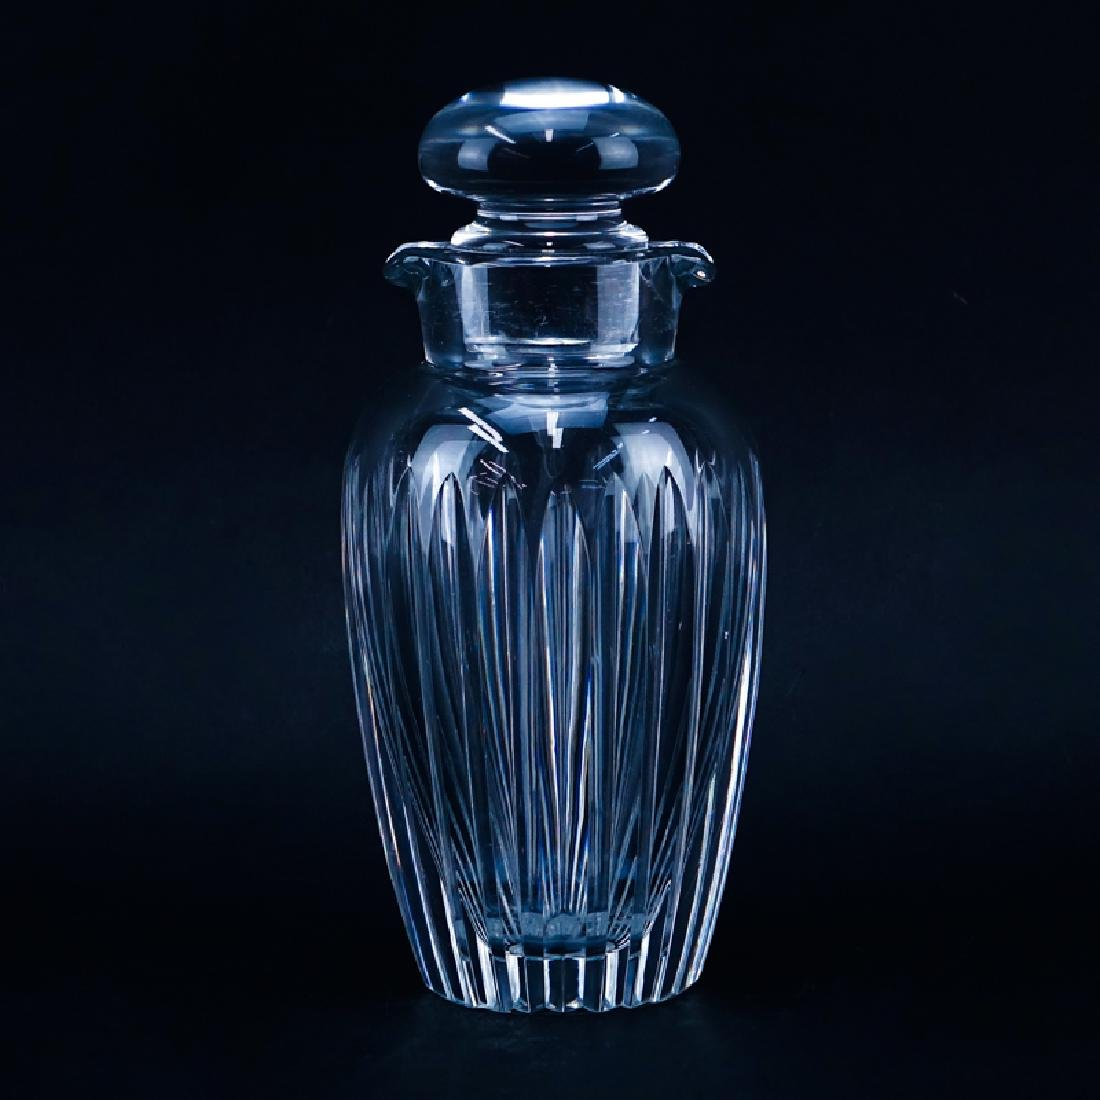 Baccarat Crystal Martini Shaker. Signed. Typical scuffs